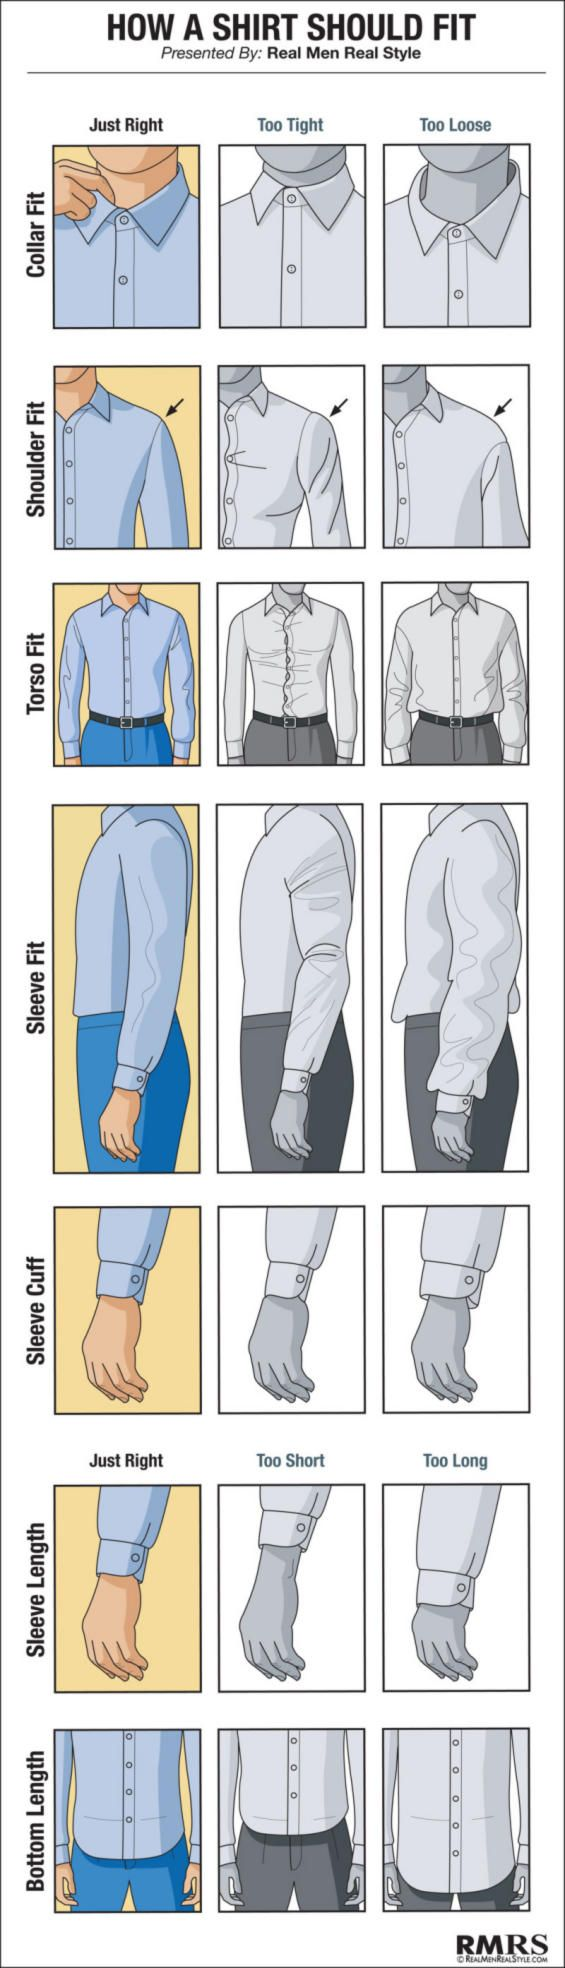 Men's Guide on How to Dress for a Job Interview